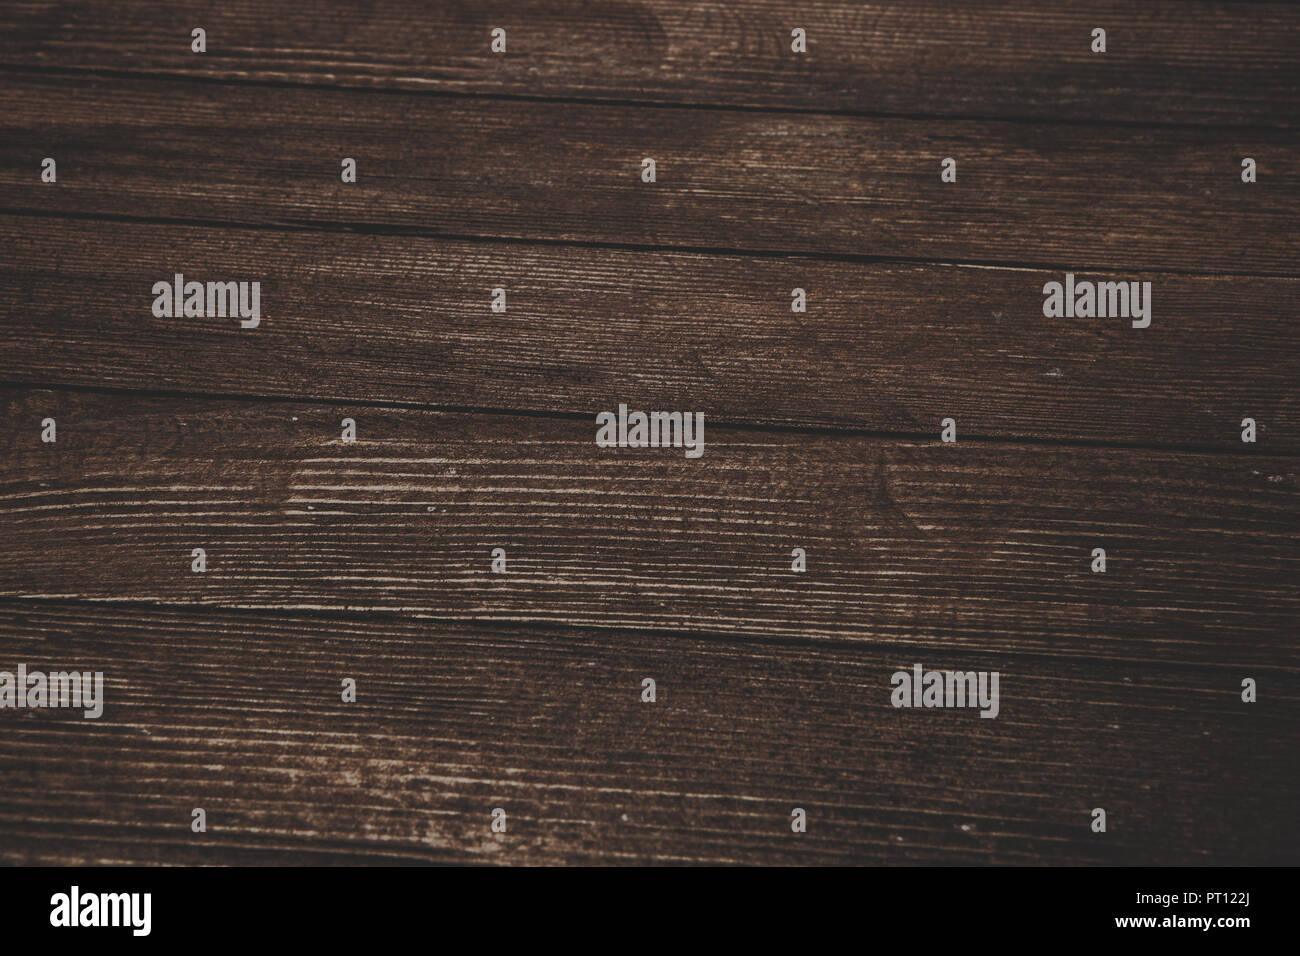 dark hardwood texture intended dark wooden texture wood brown background old panels retro table rustic background vintage colored surface panels